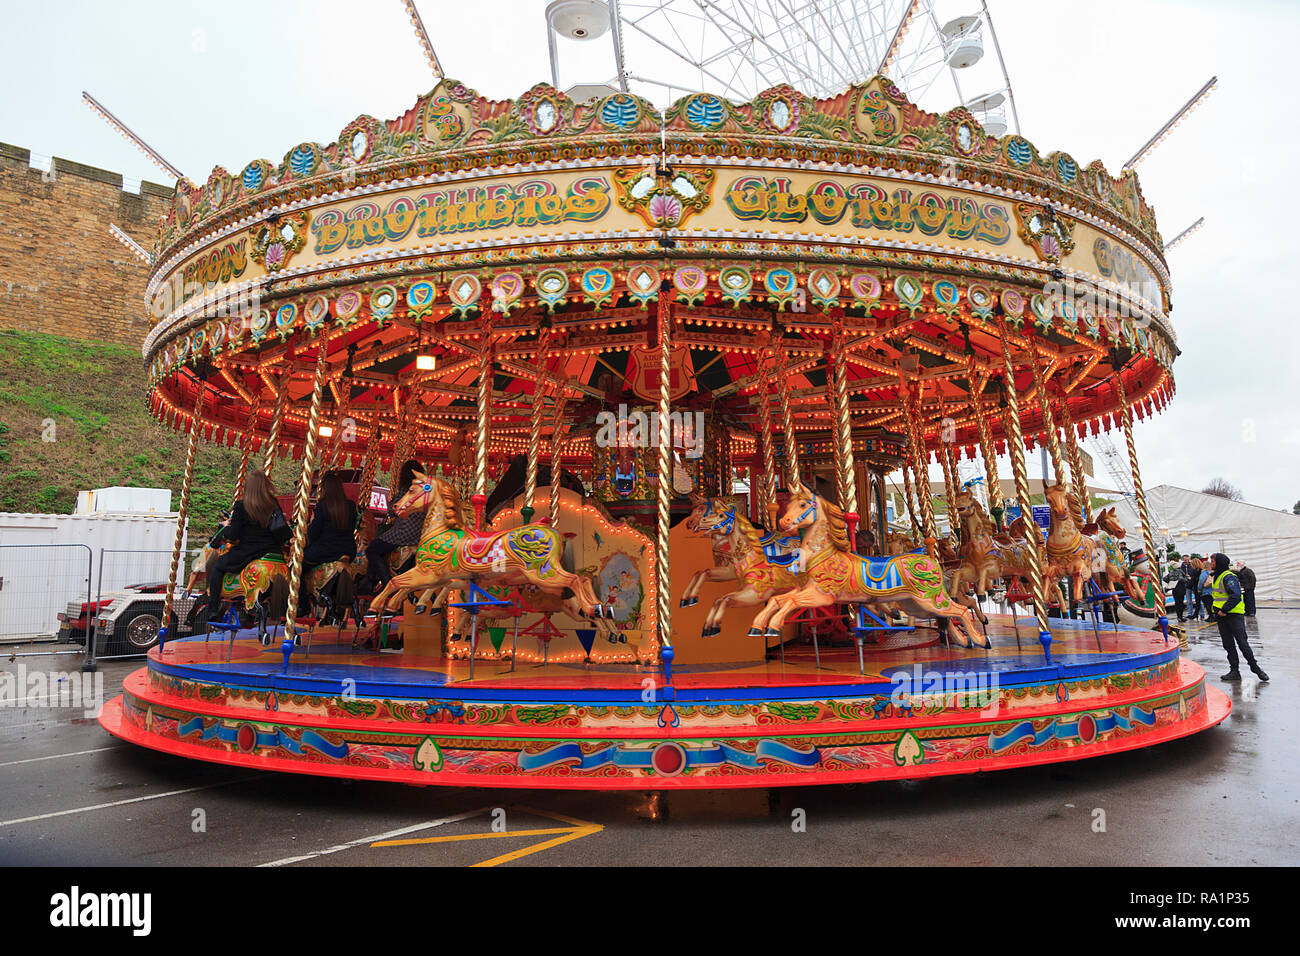 Carousel Ride at the Lincoln Christmas Market Lincolnshire UK Stock Photo